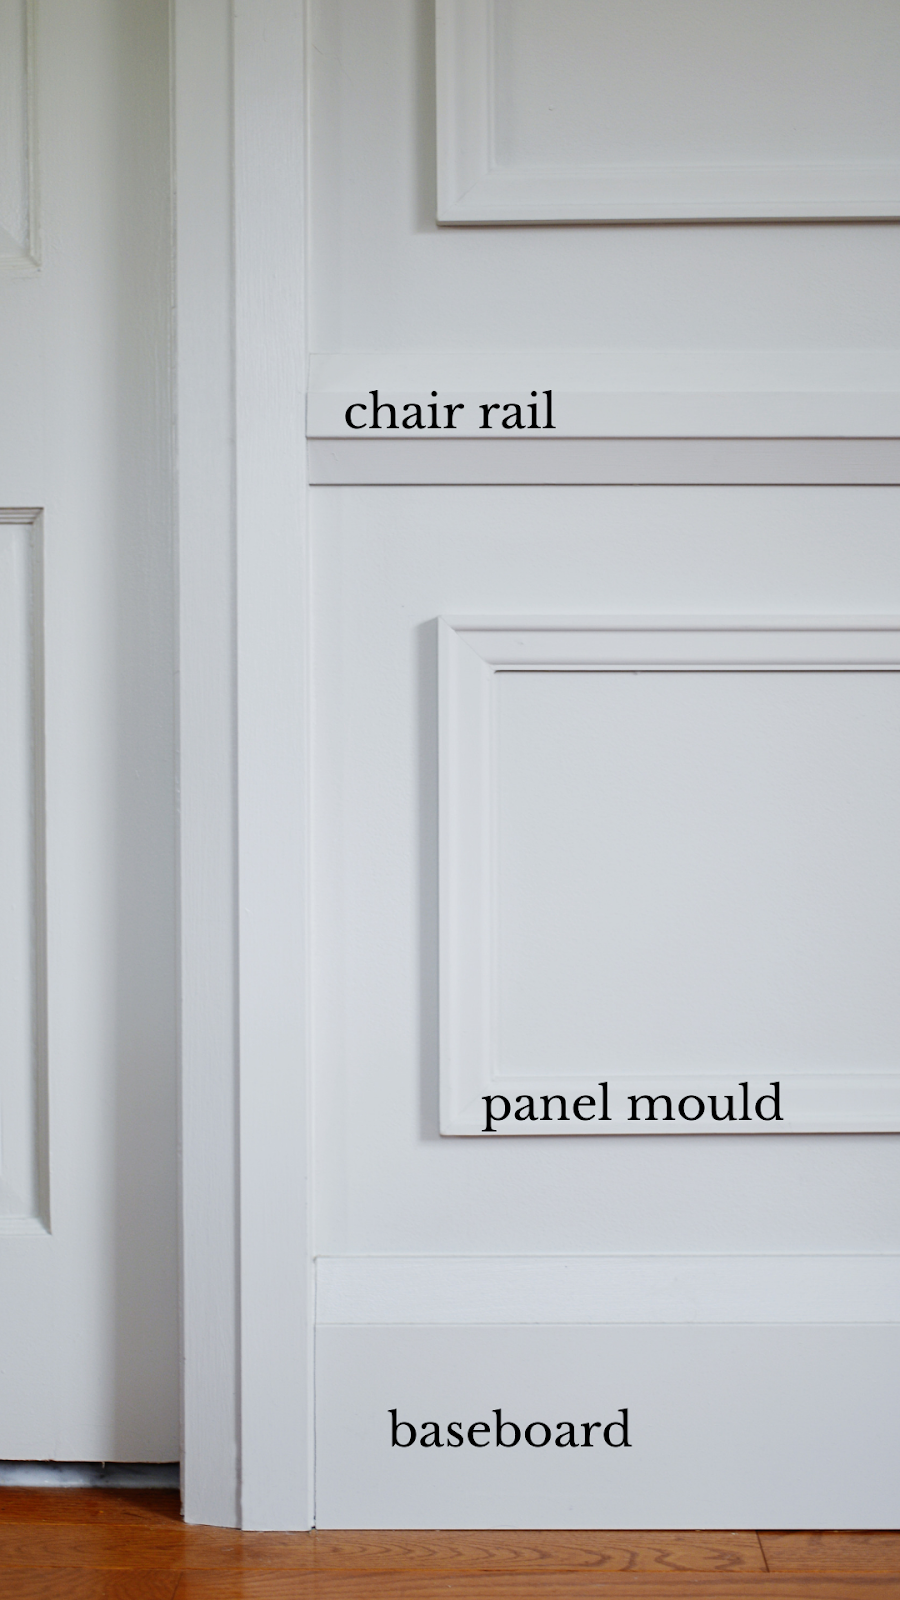 examples of trim and moulding, chair rail, panel mould, baseboard, traditional moulding